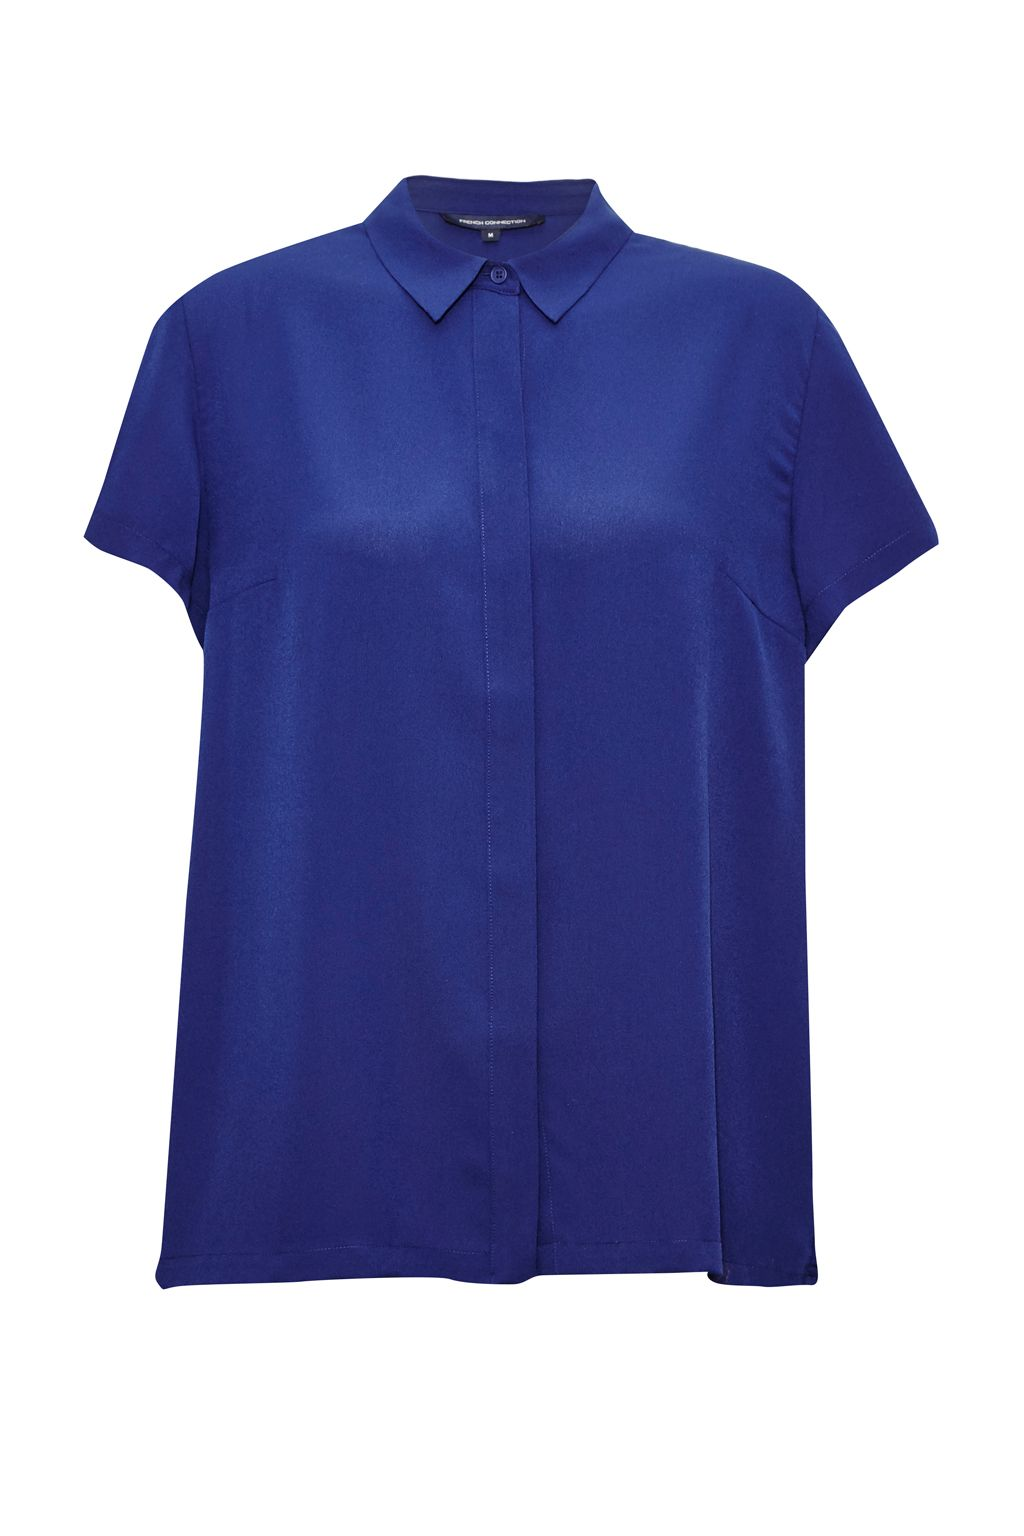 French Connection Classic Crepe Short Sleeve Shirt, Blue